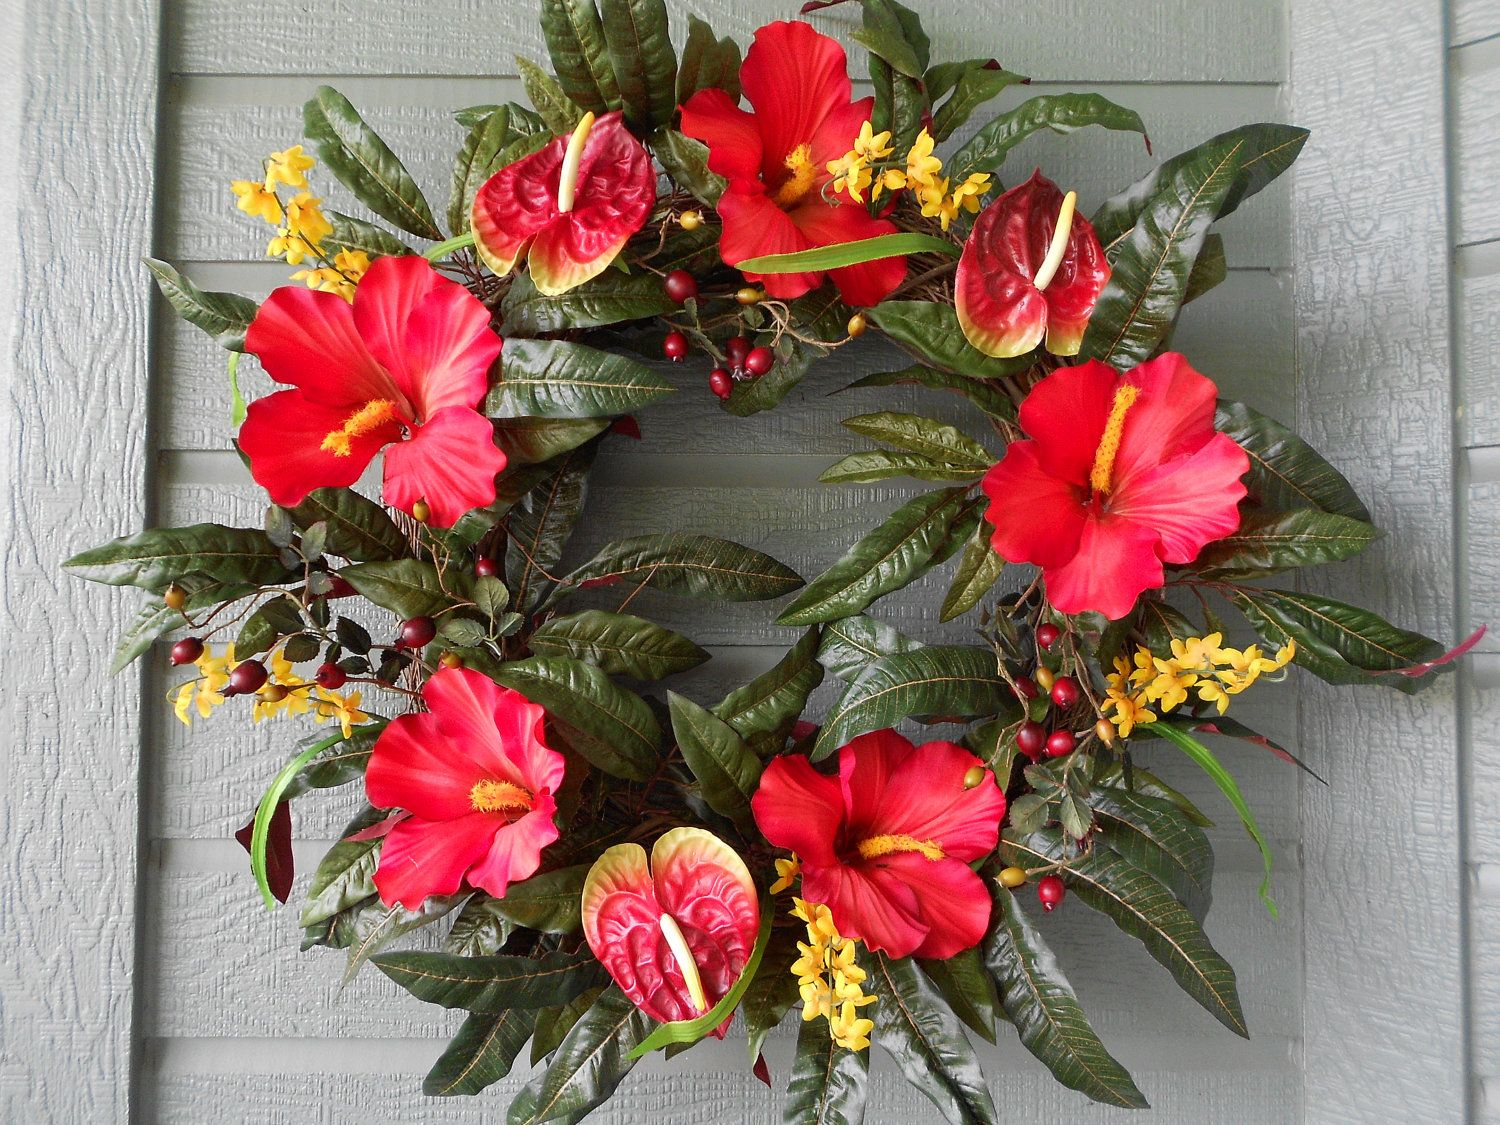 Hawaiian Christmas Party Ideas Part - 49: Great Idea For A Luah Party....Tropical Wreath In Bright Red Hibiscus